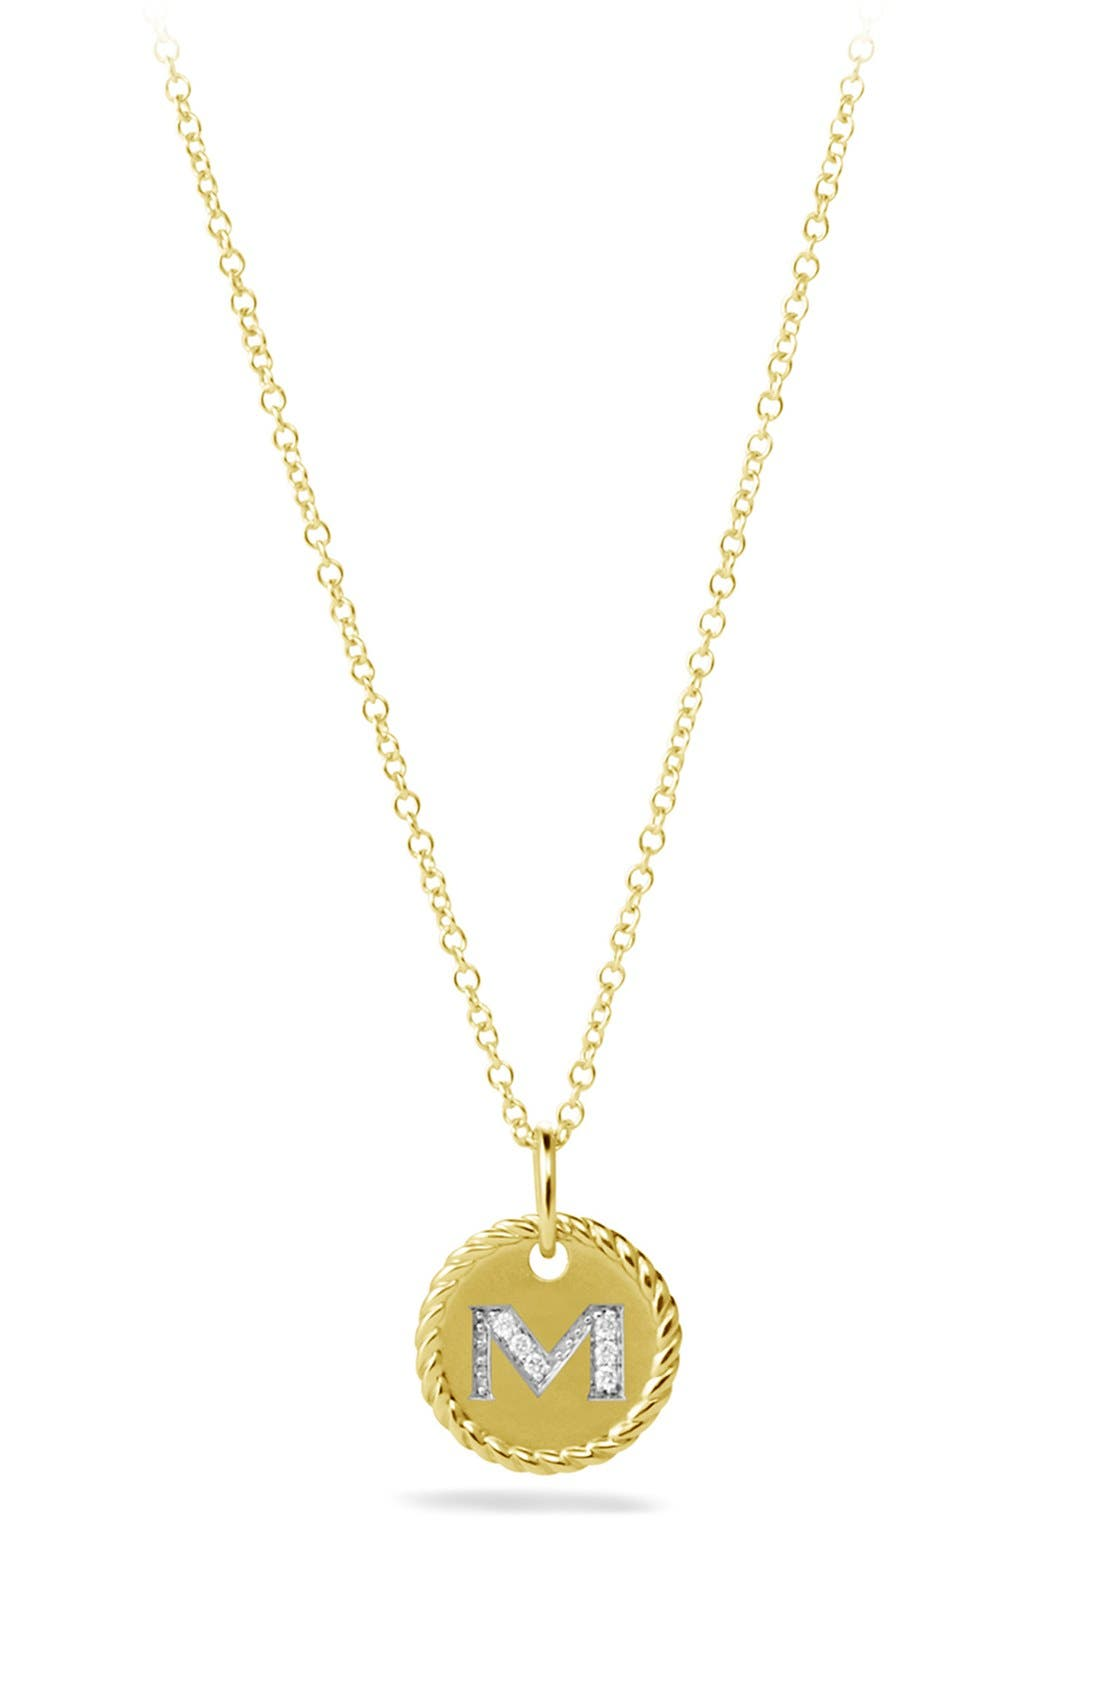 Main Image - David Yurman 'Cable Collectibles' Initial Pendant with Diamonds in Gold on Chain